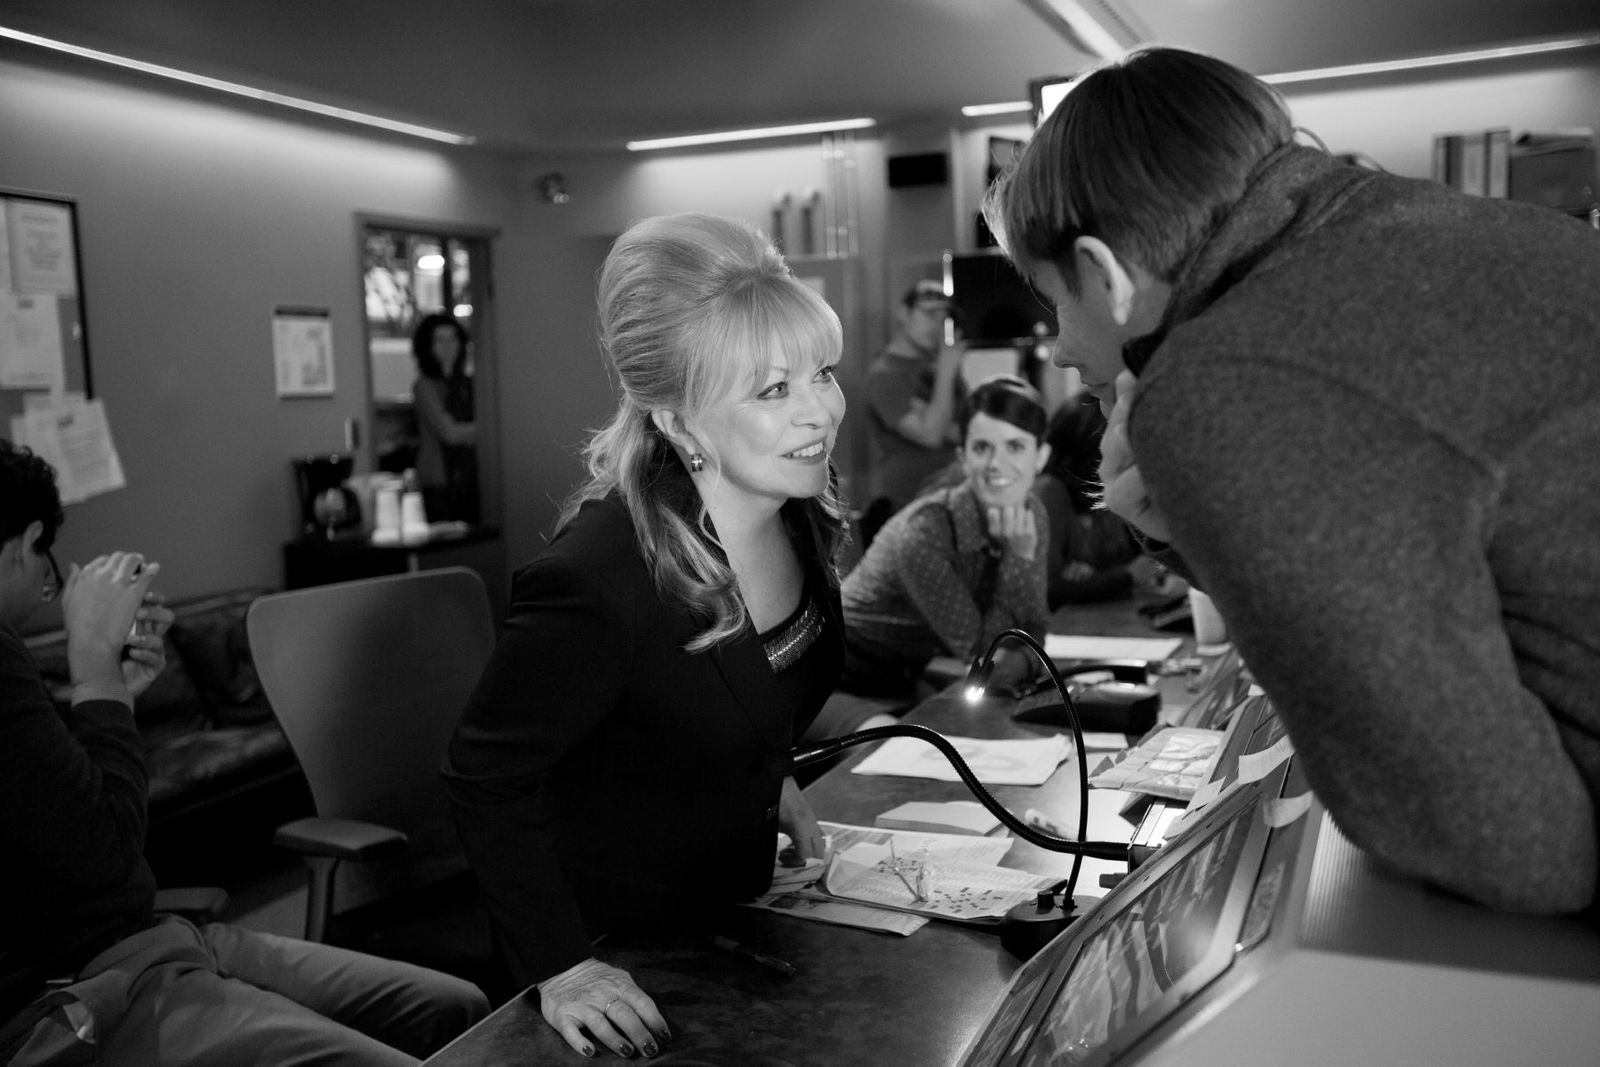 Jacki Weaver on the set of Blunt Talk